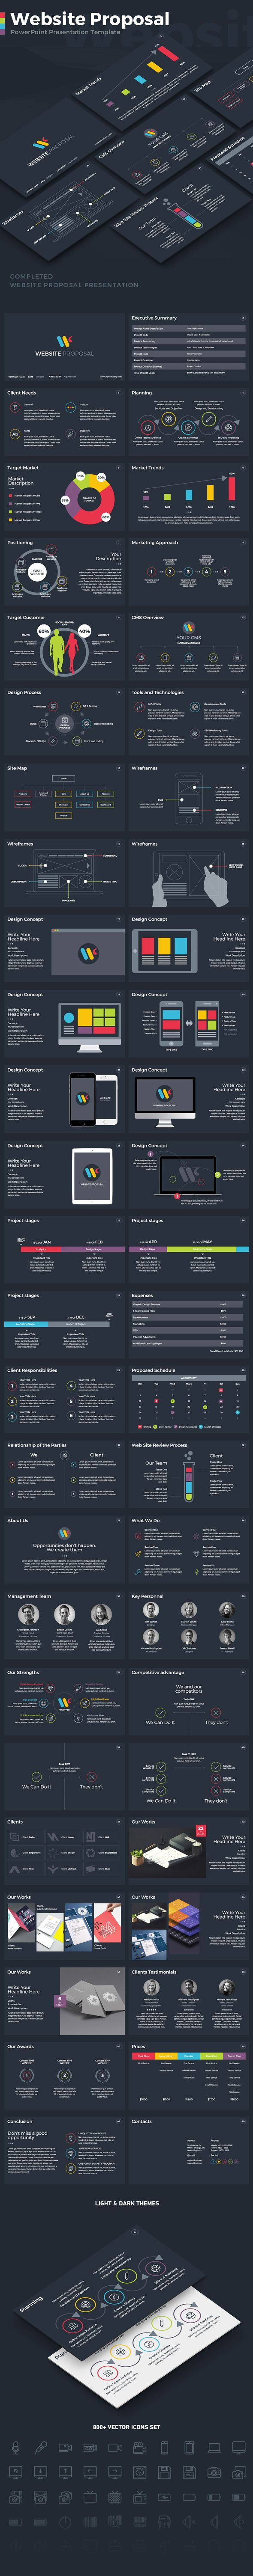 Website Proposal PowerPoint Template - Business PowerPoint Templates